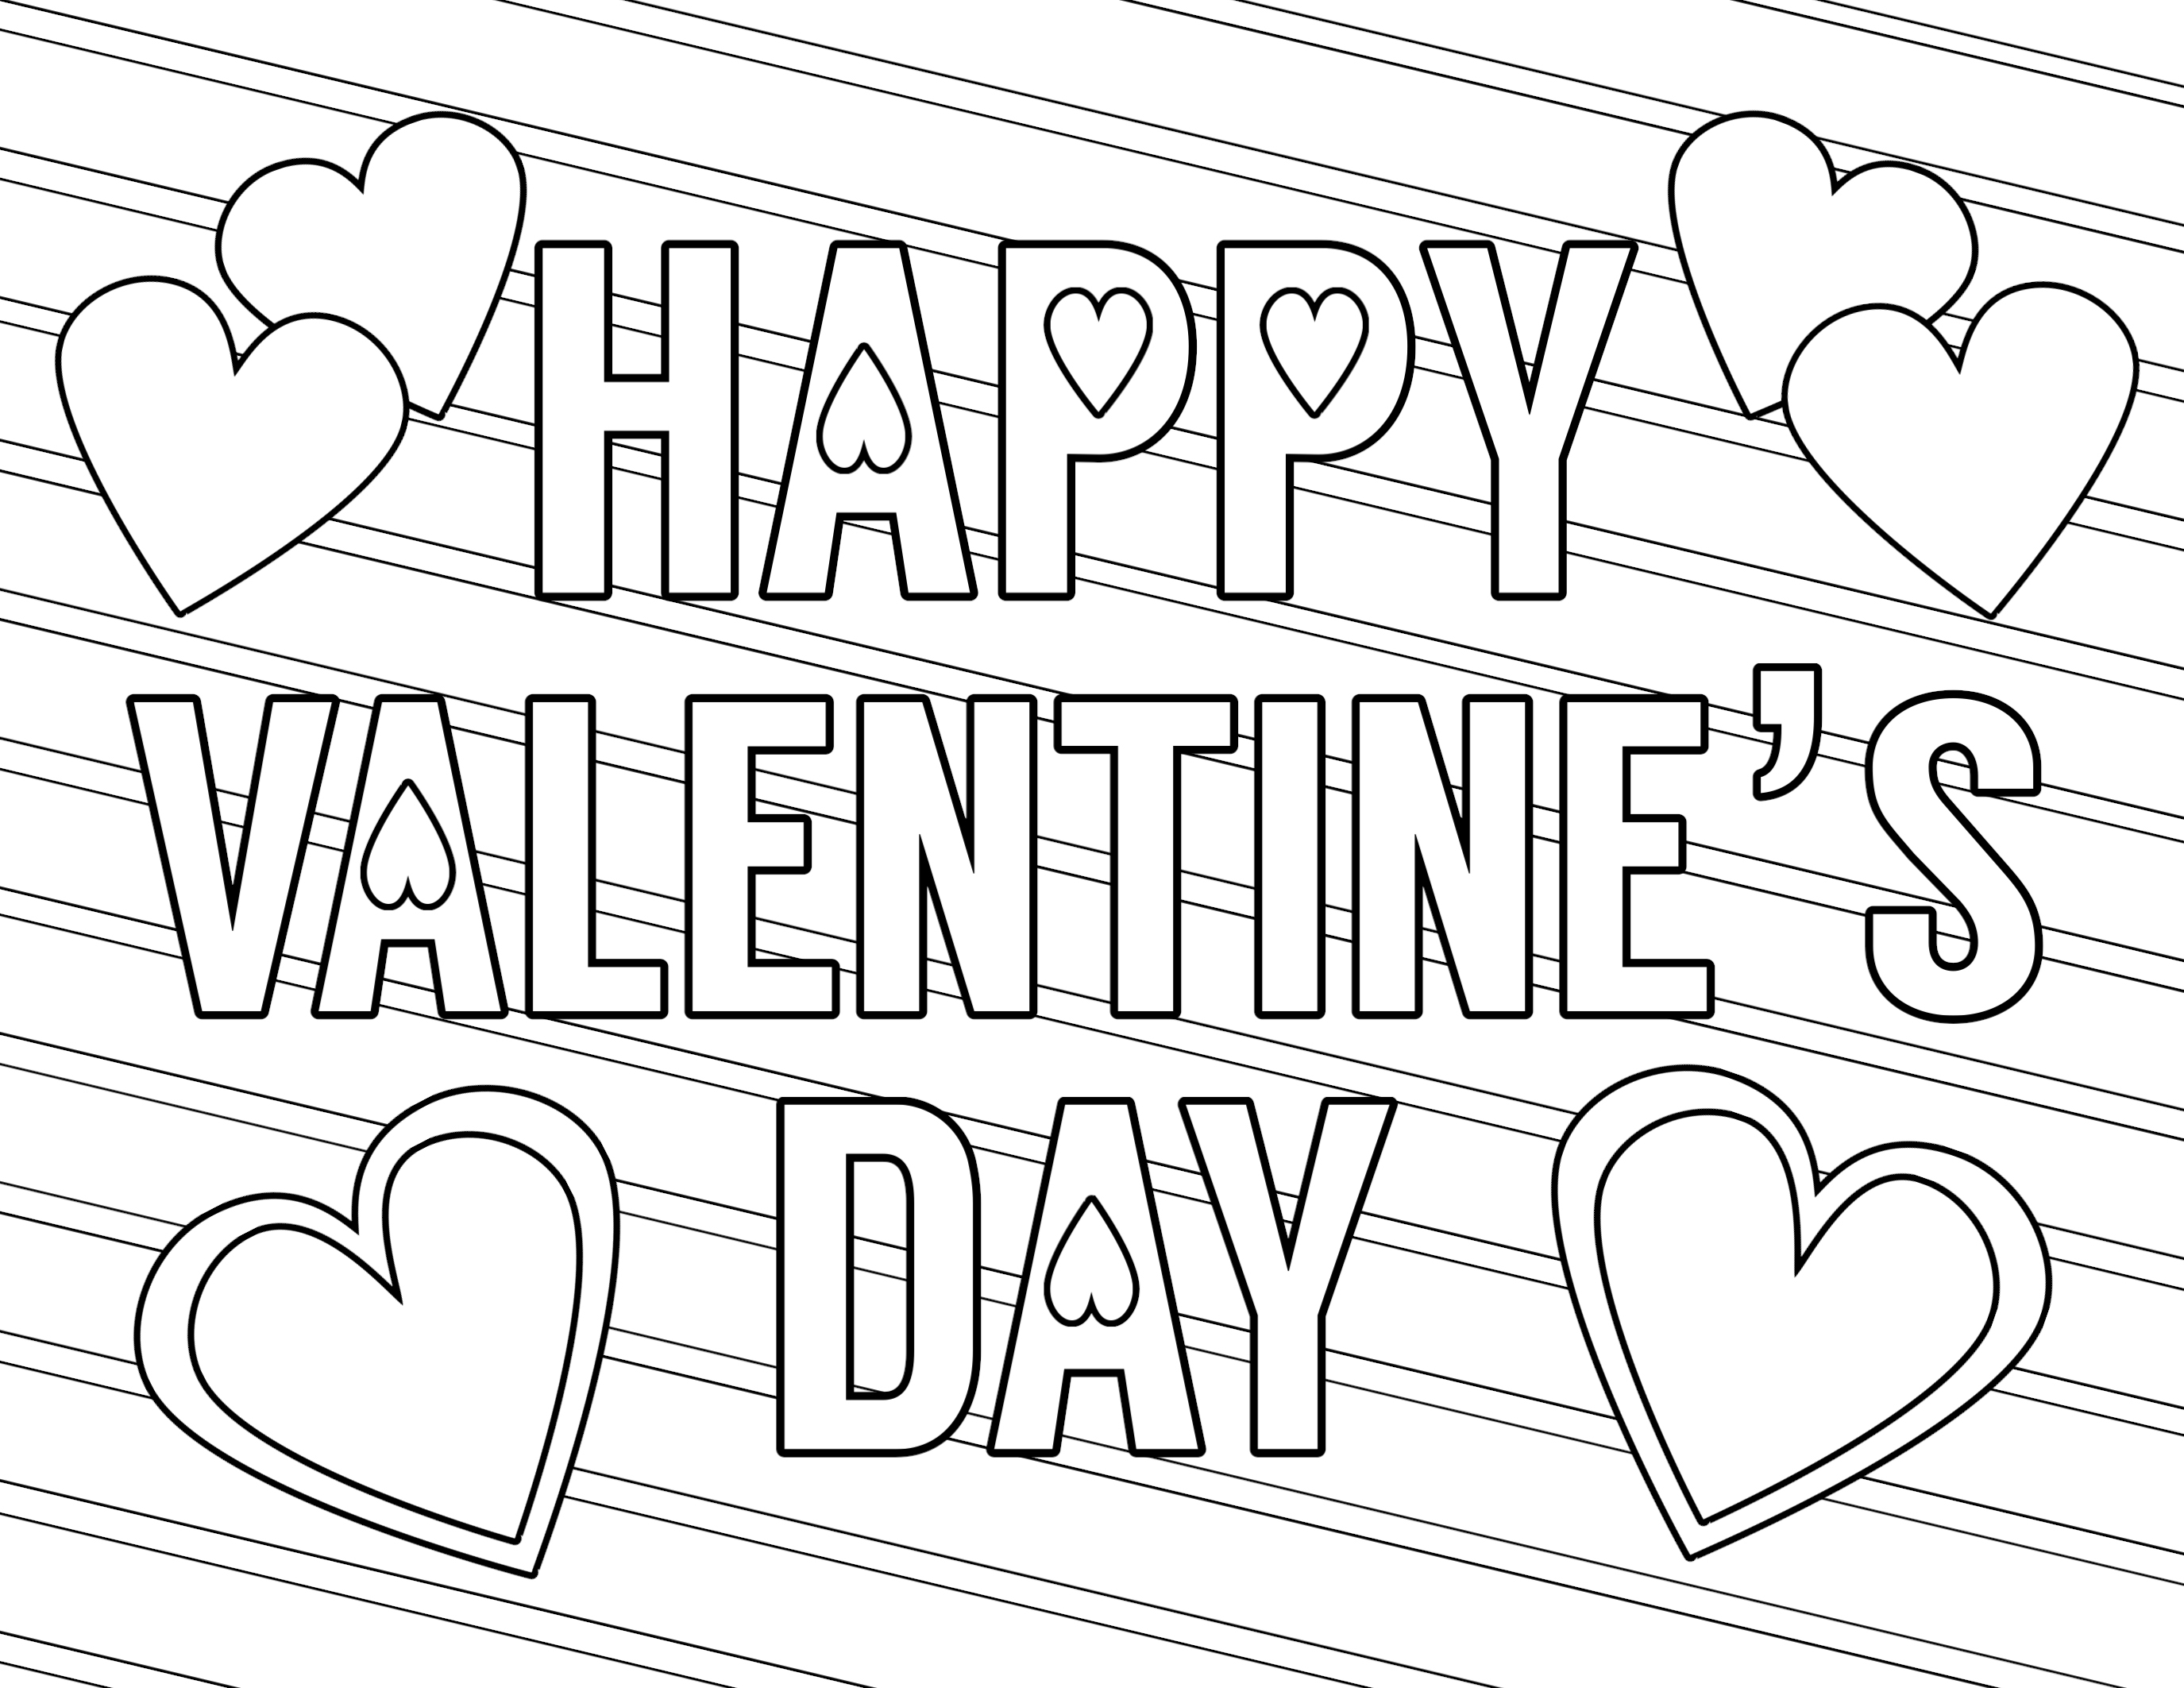 Coloring Pages : Coloring Pages Valentines Day Page Printable - Free Printable Valentine Coloring Pages